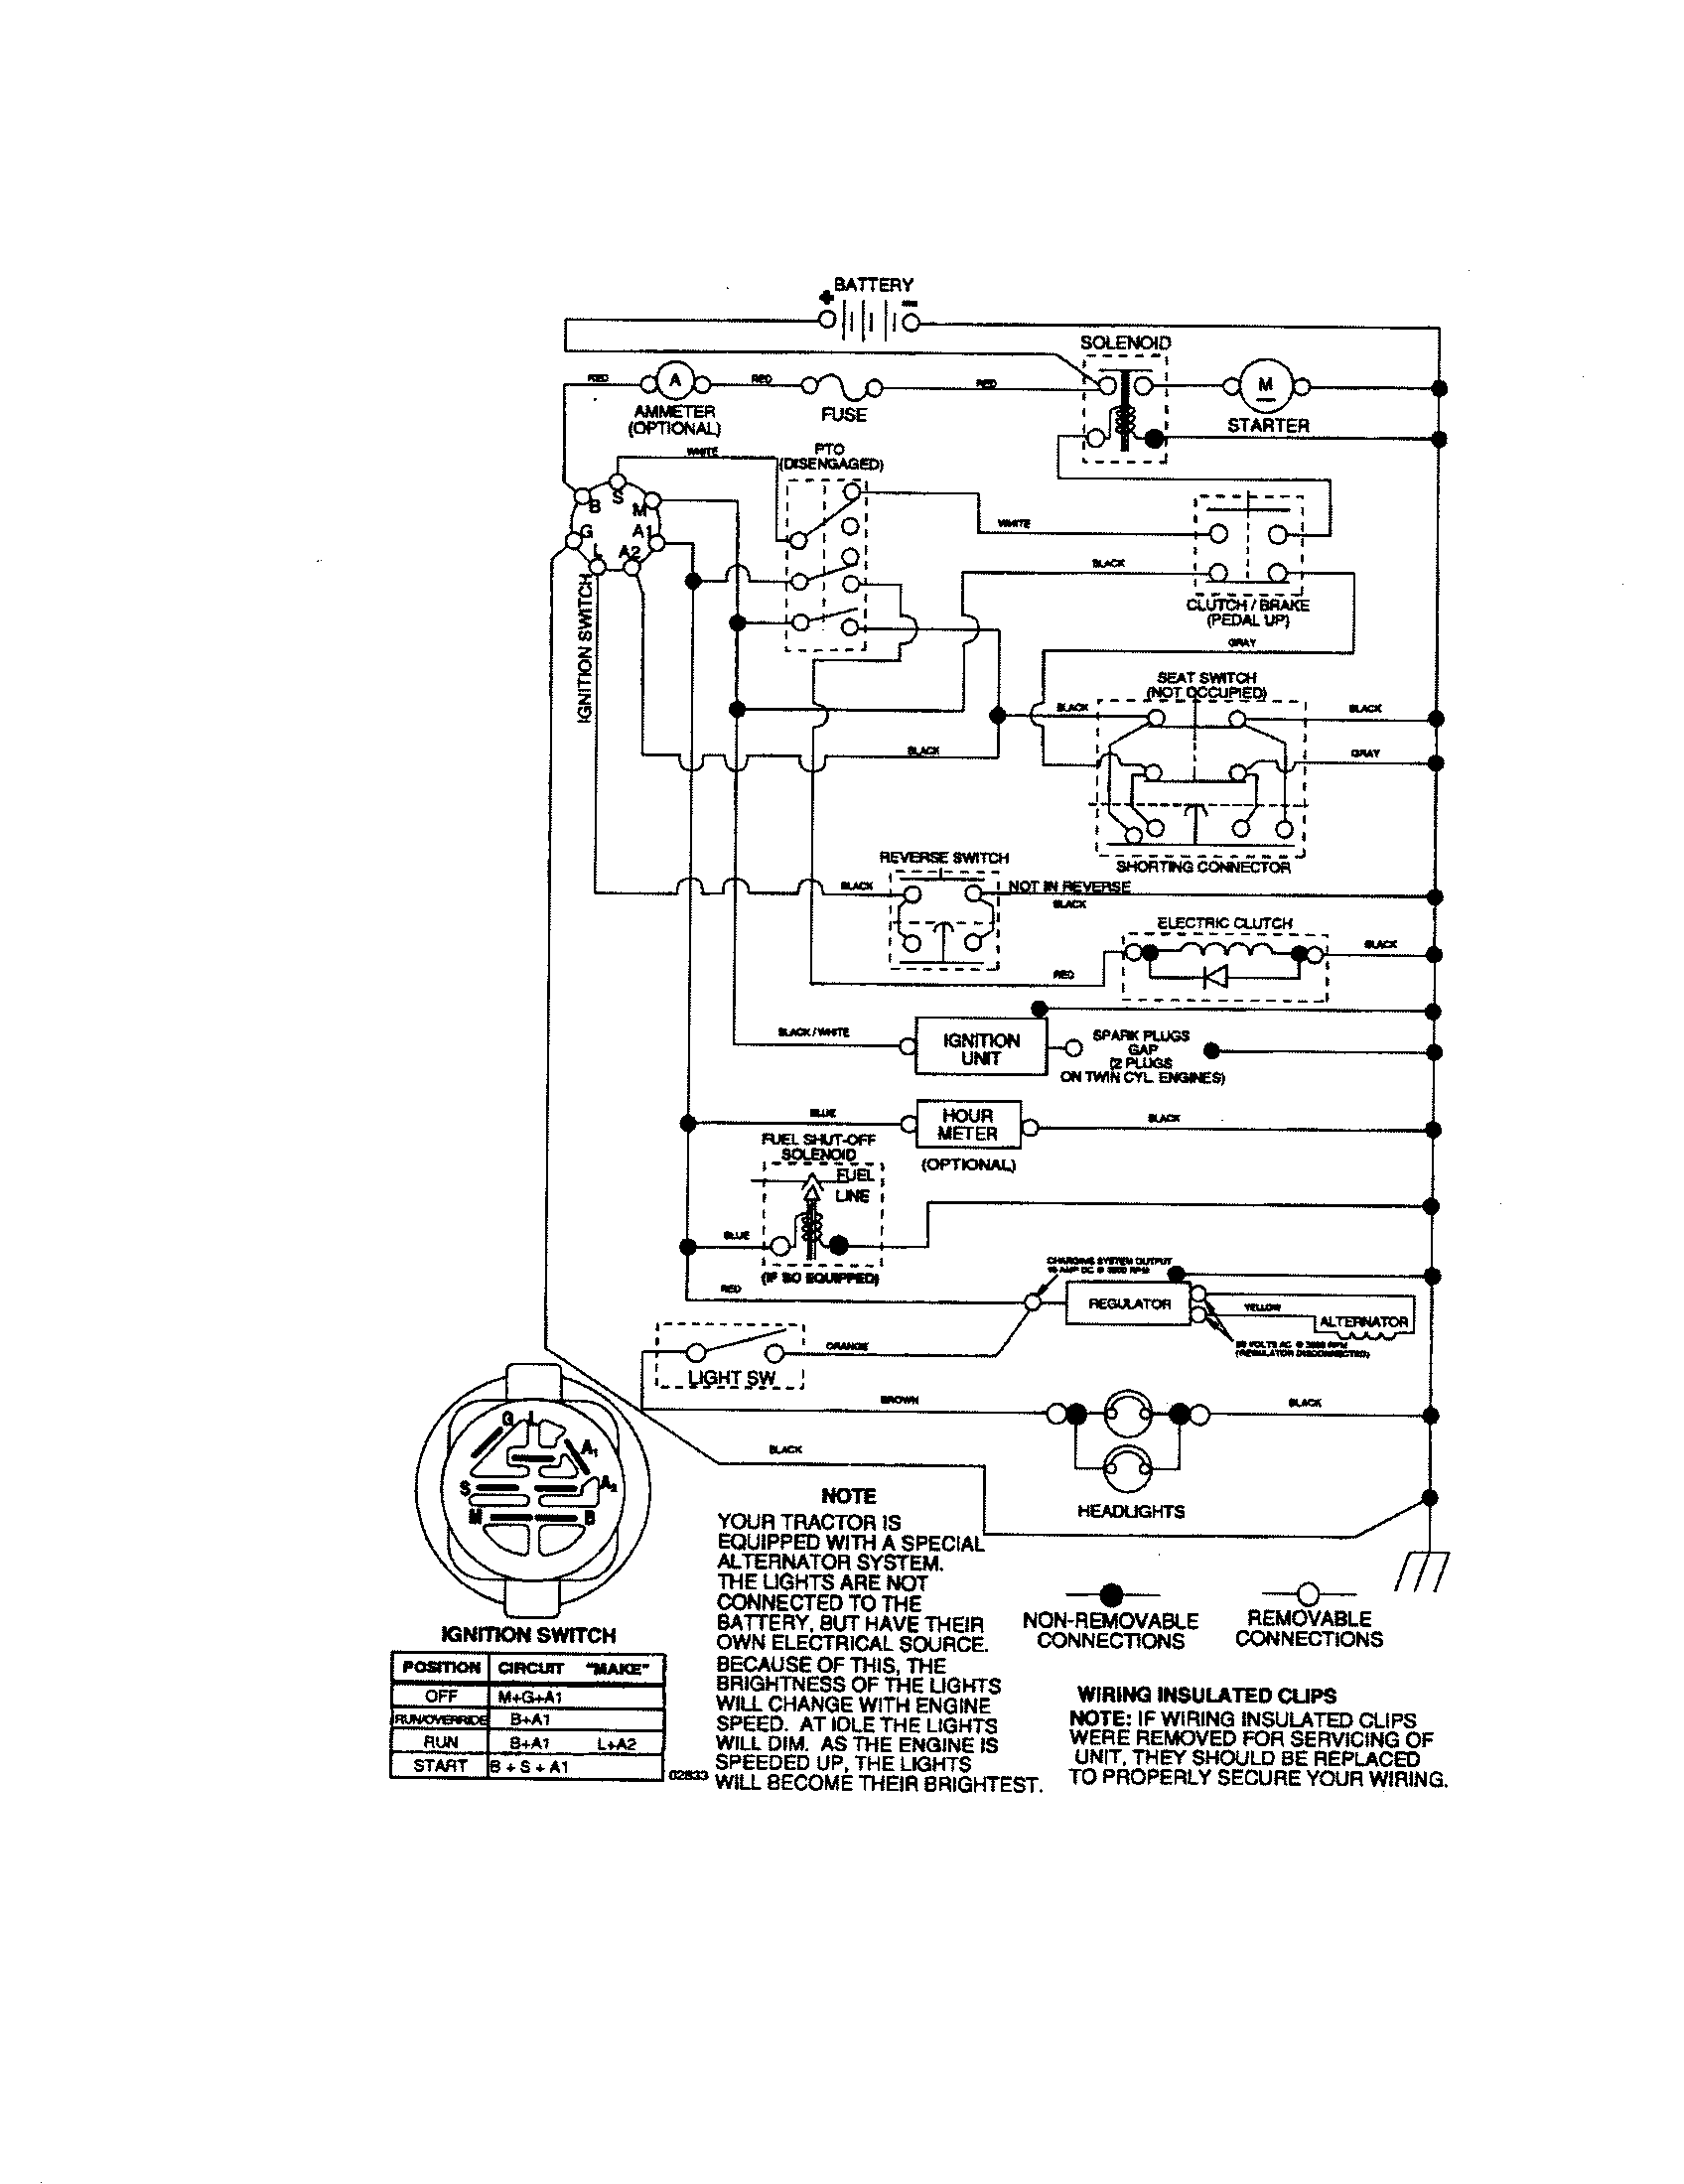 SCHEMATIC DIAGRAM-TRACTOR Diagram & Parts List for Model